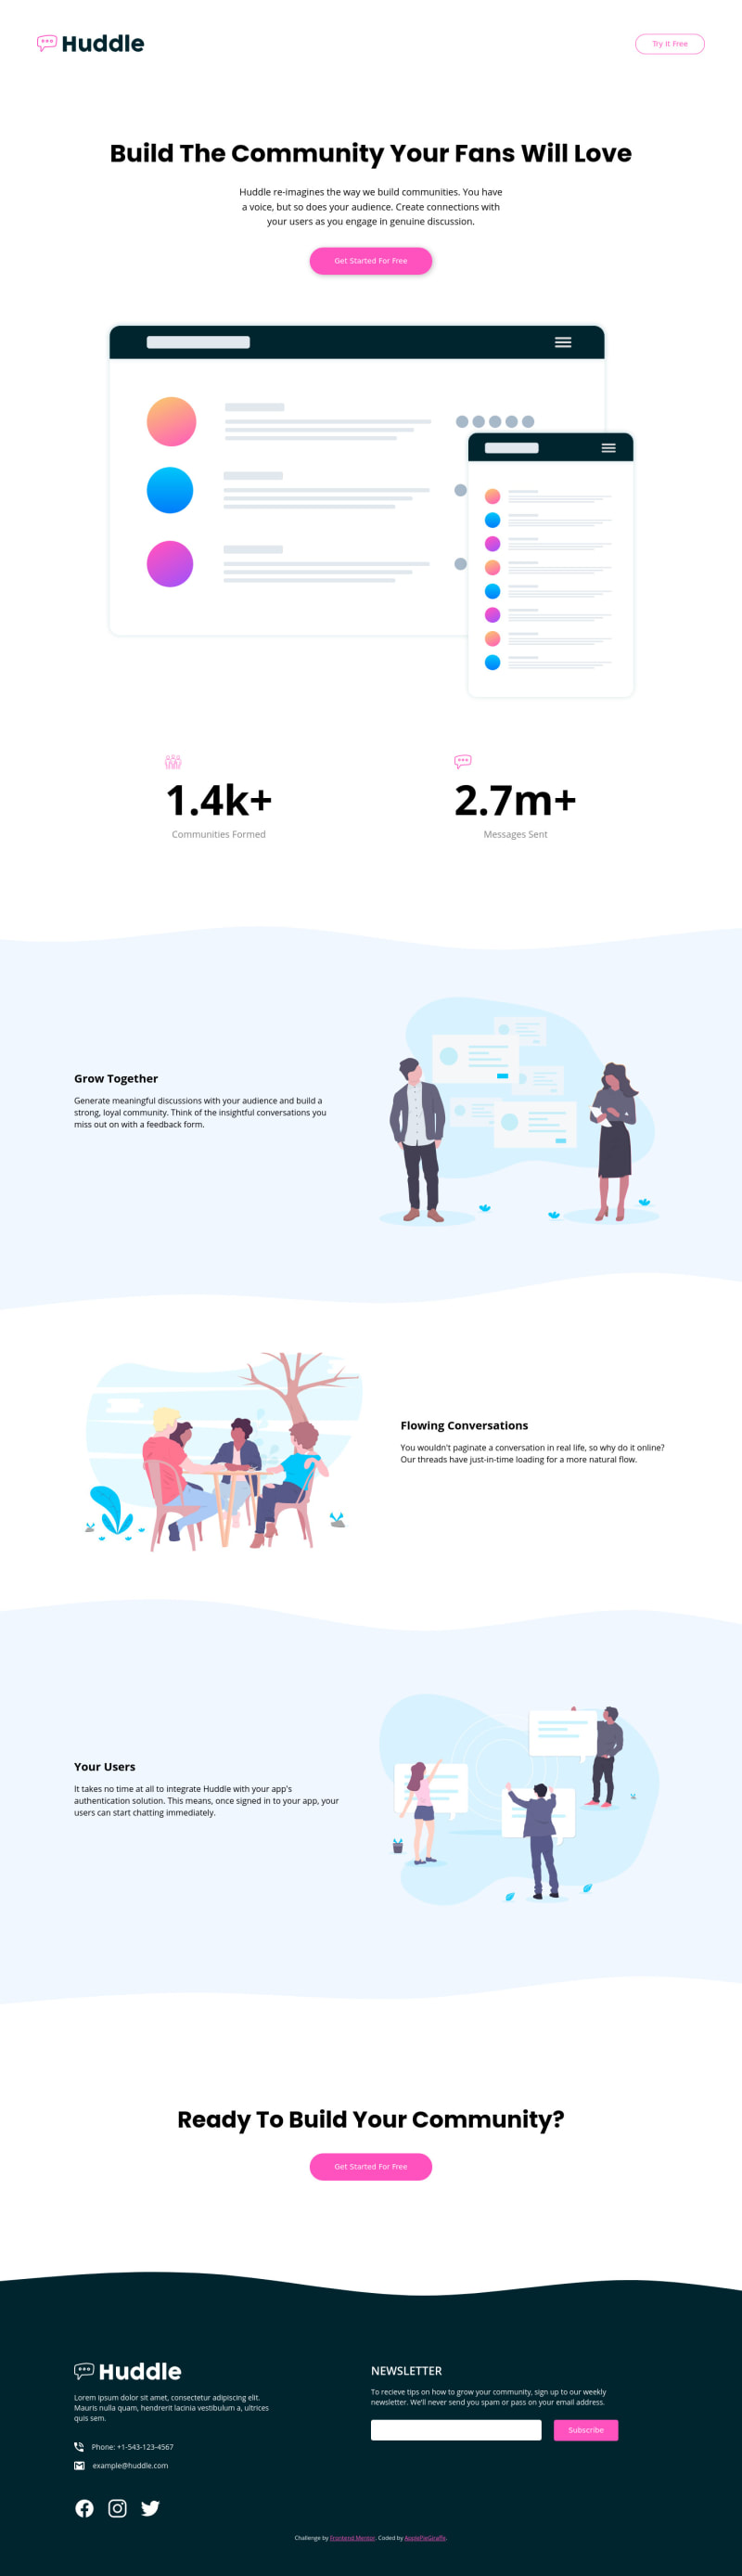 Desktop design screenshot for the Huddle landing page with curved sections coding challenge